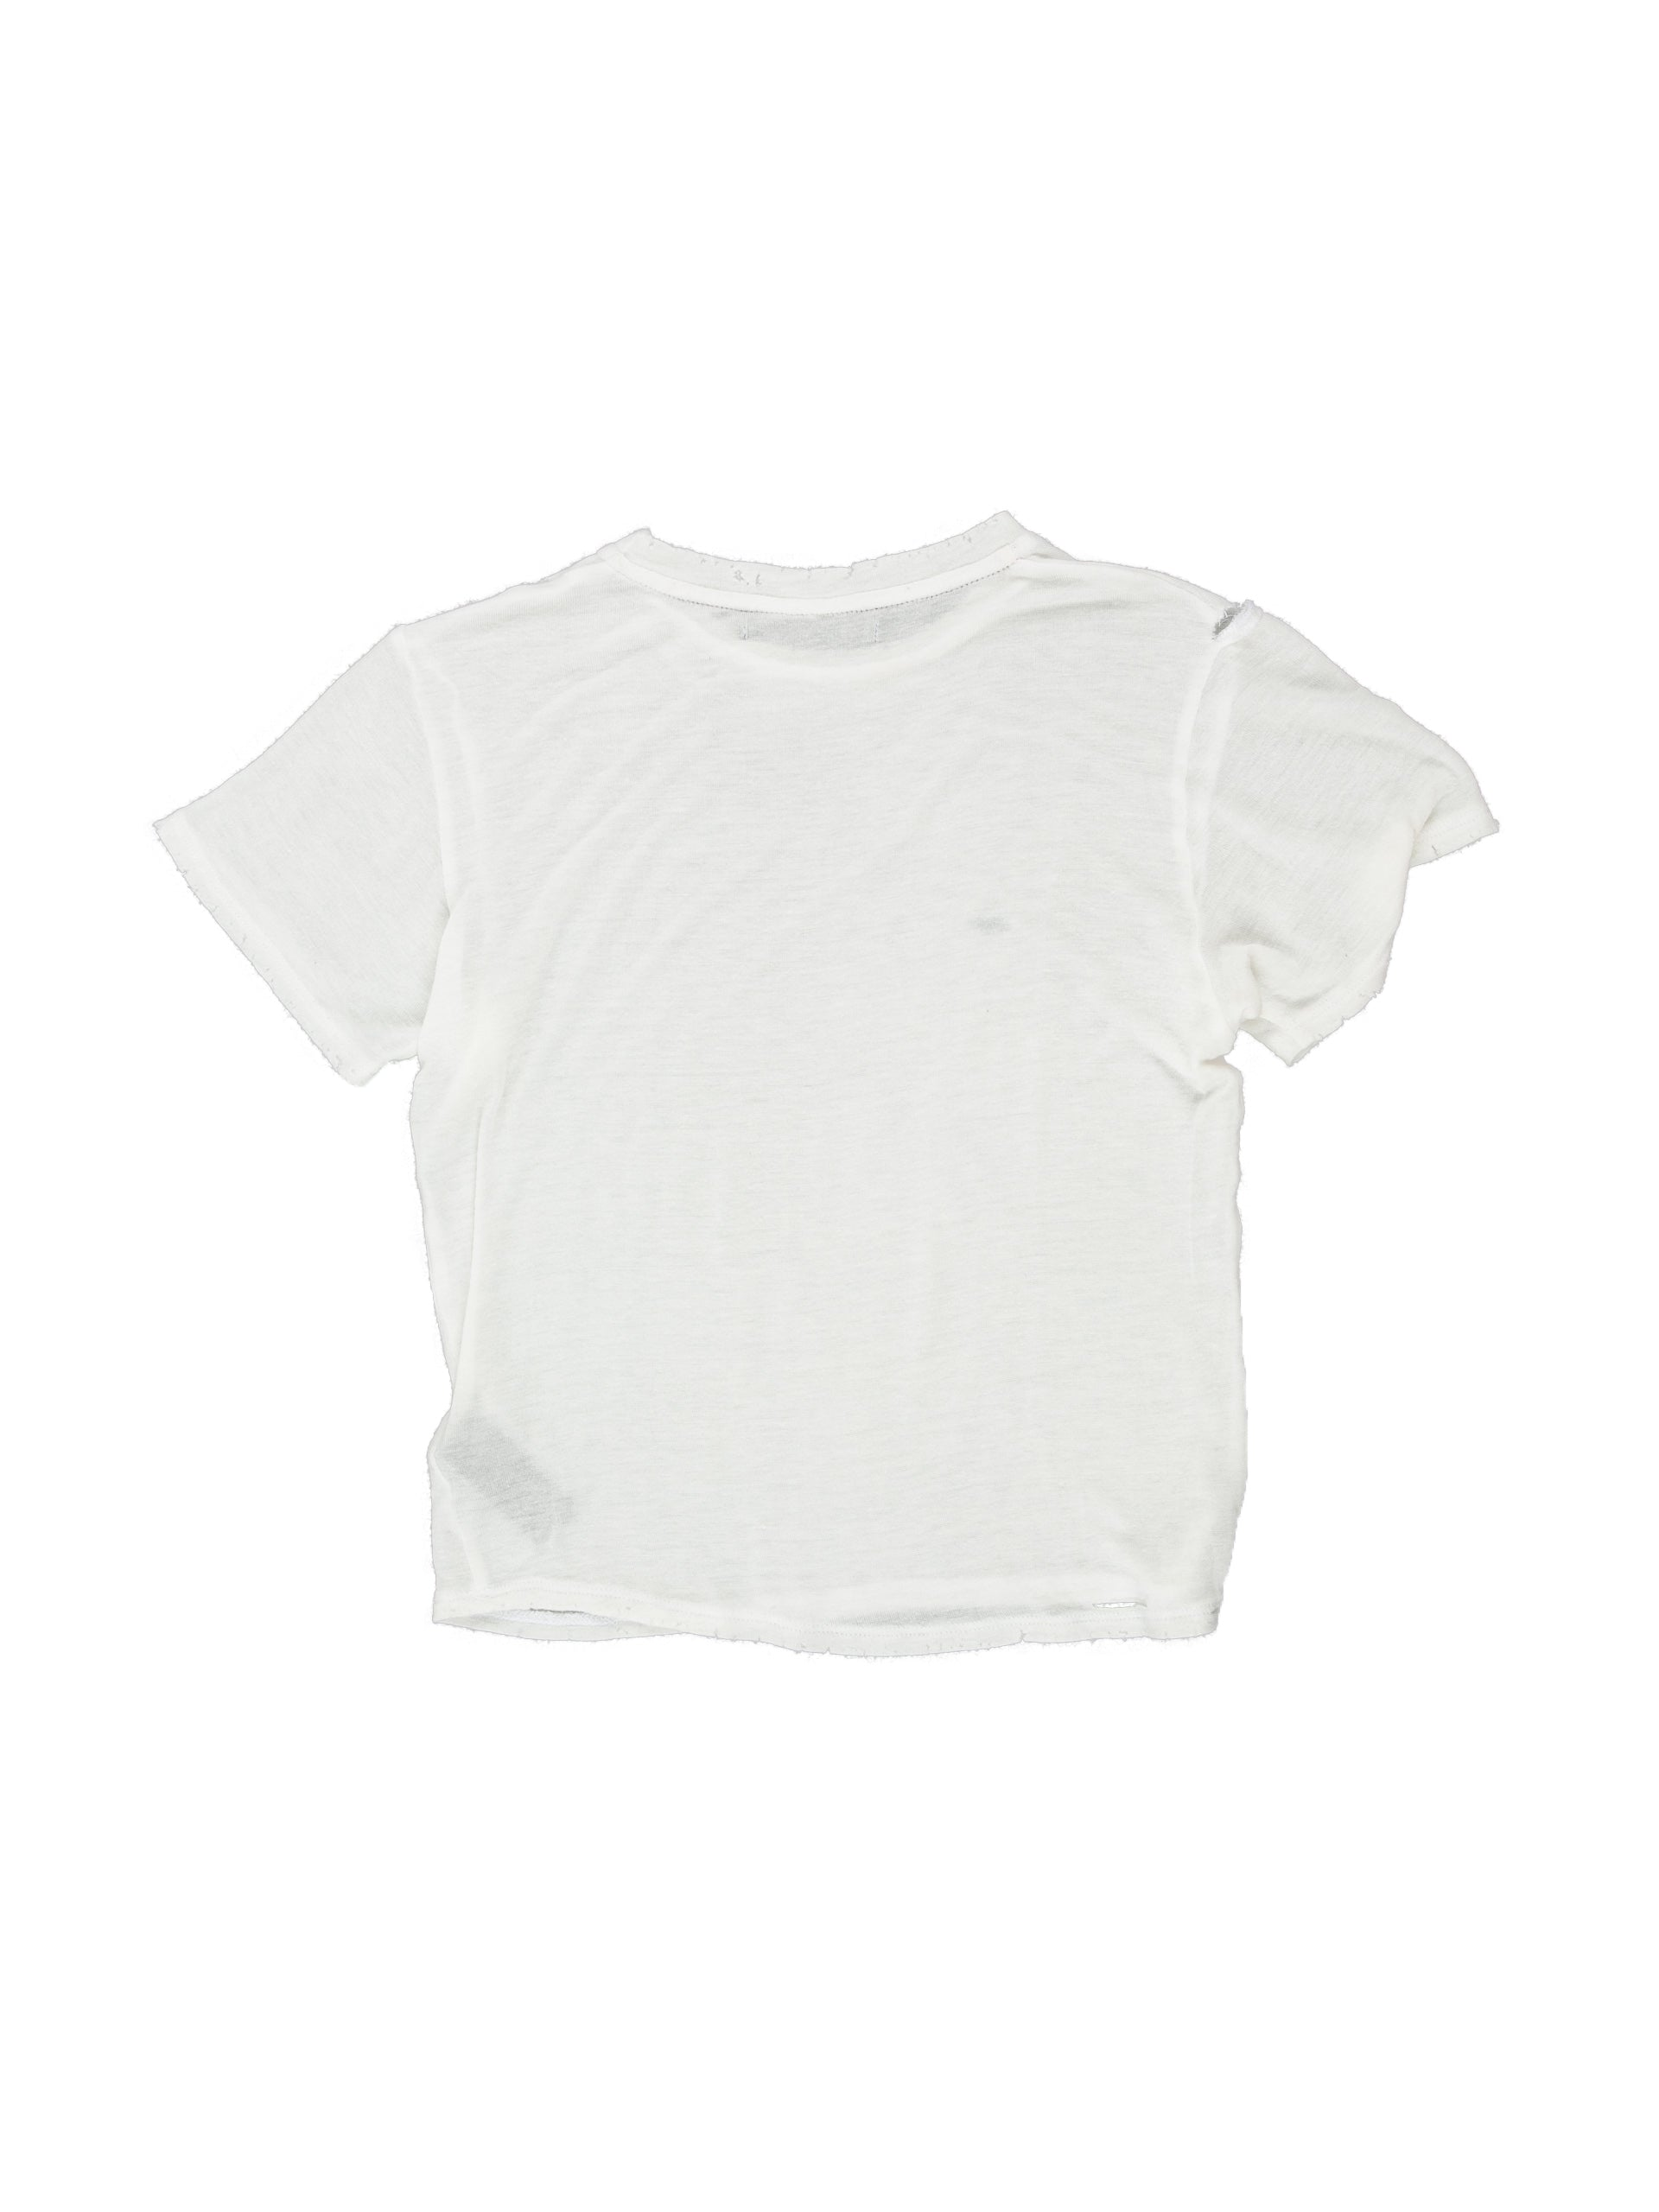 Back of Boxy Tee in Ivory